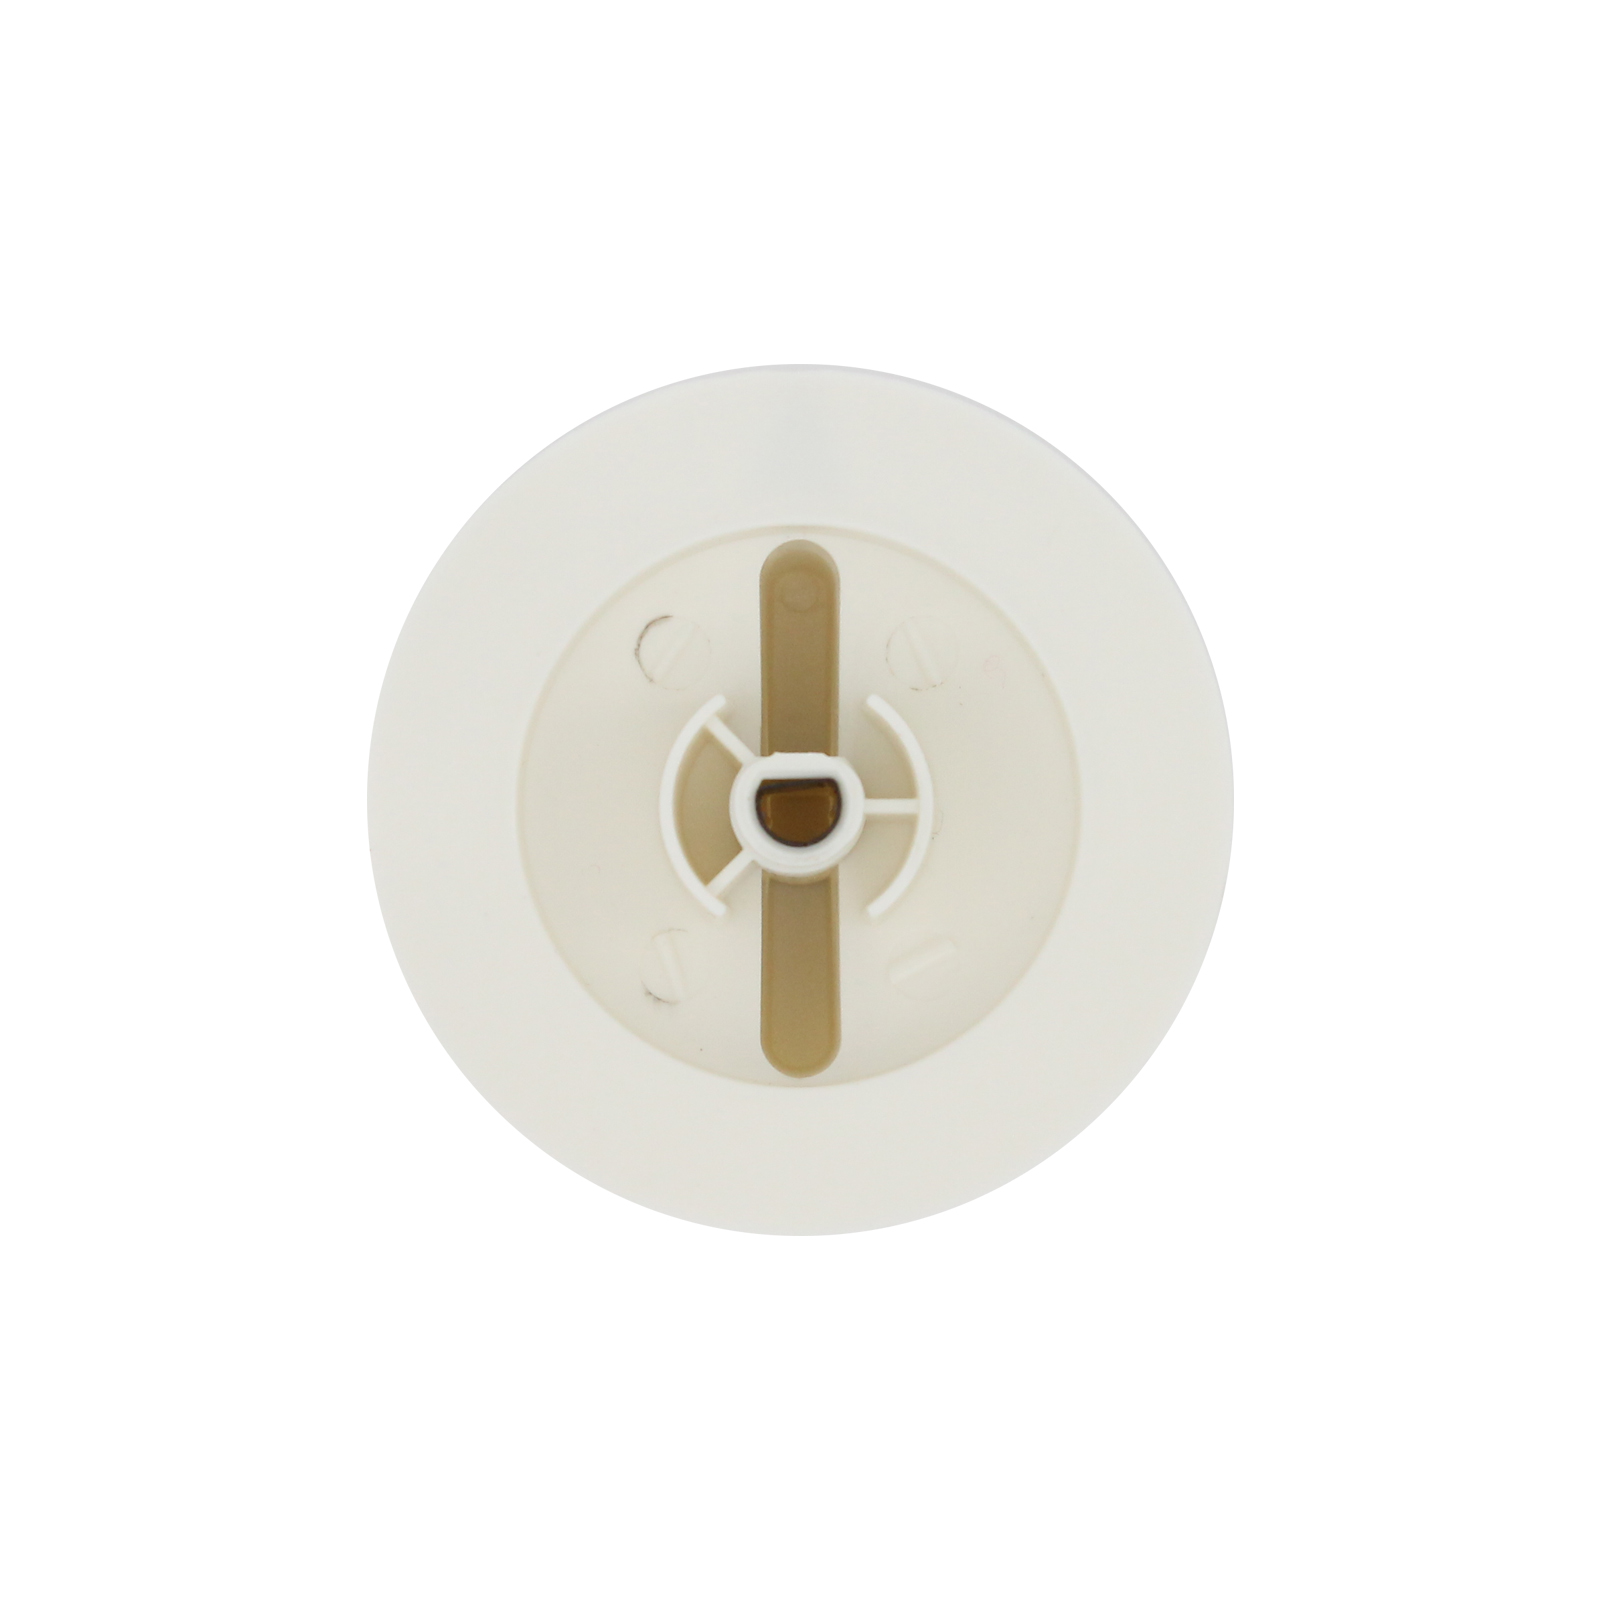 Replacement Dryer Timer Knob WE1M652 for Hotpoint HTDX100ED4WW Electric Dryer - image 1 of 4